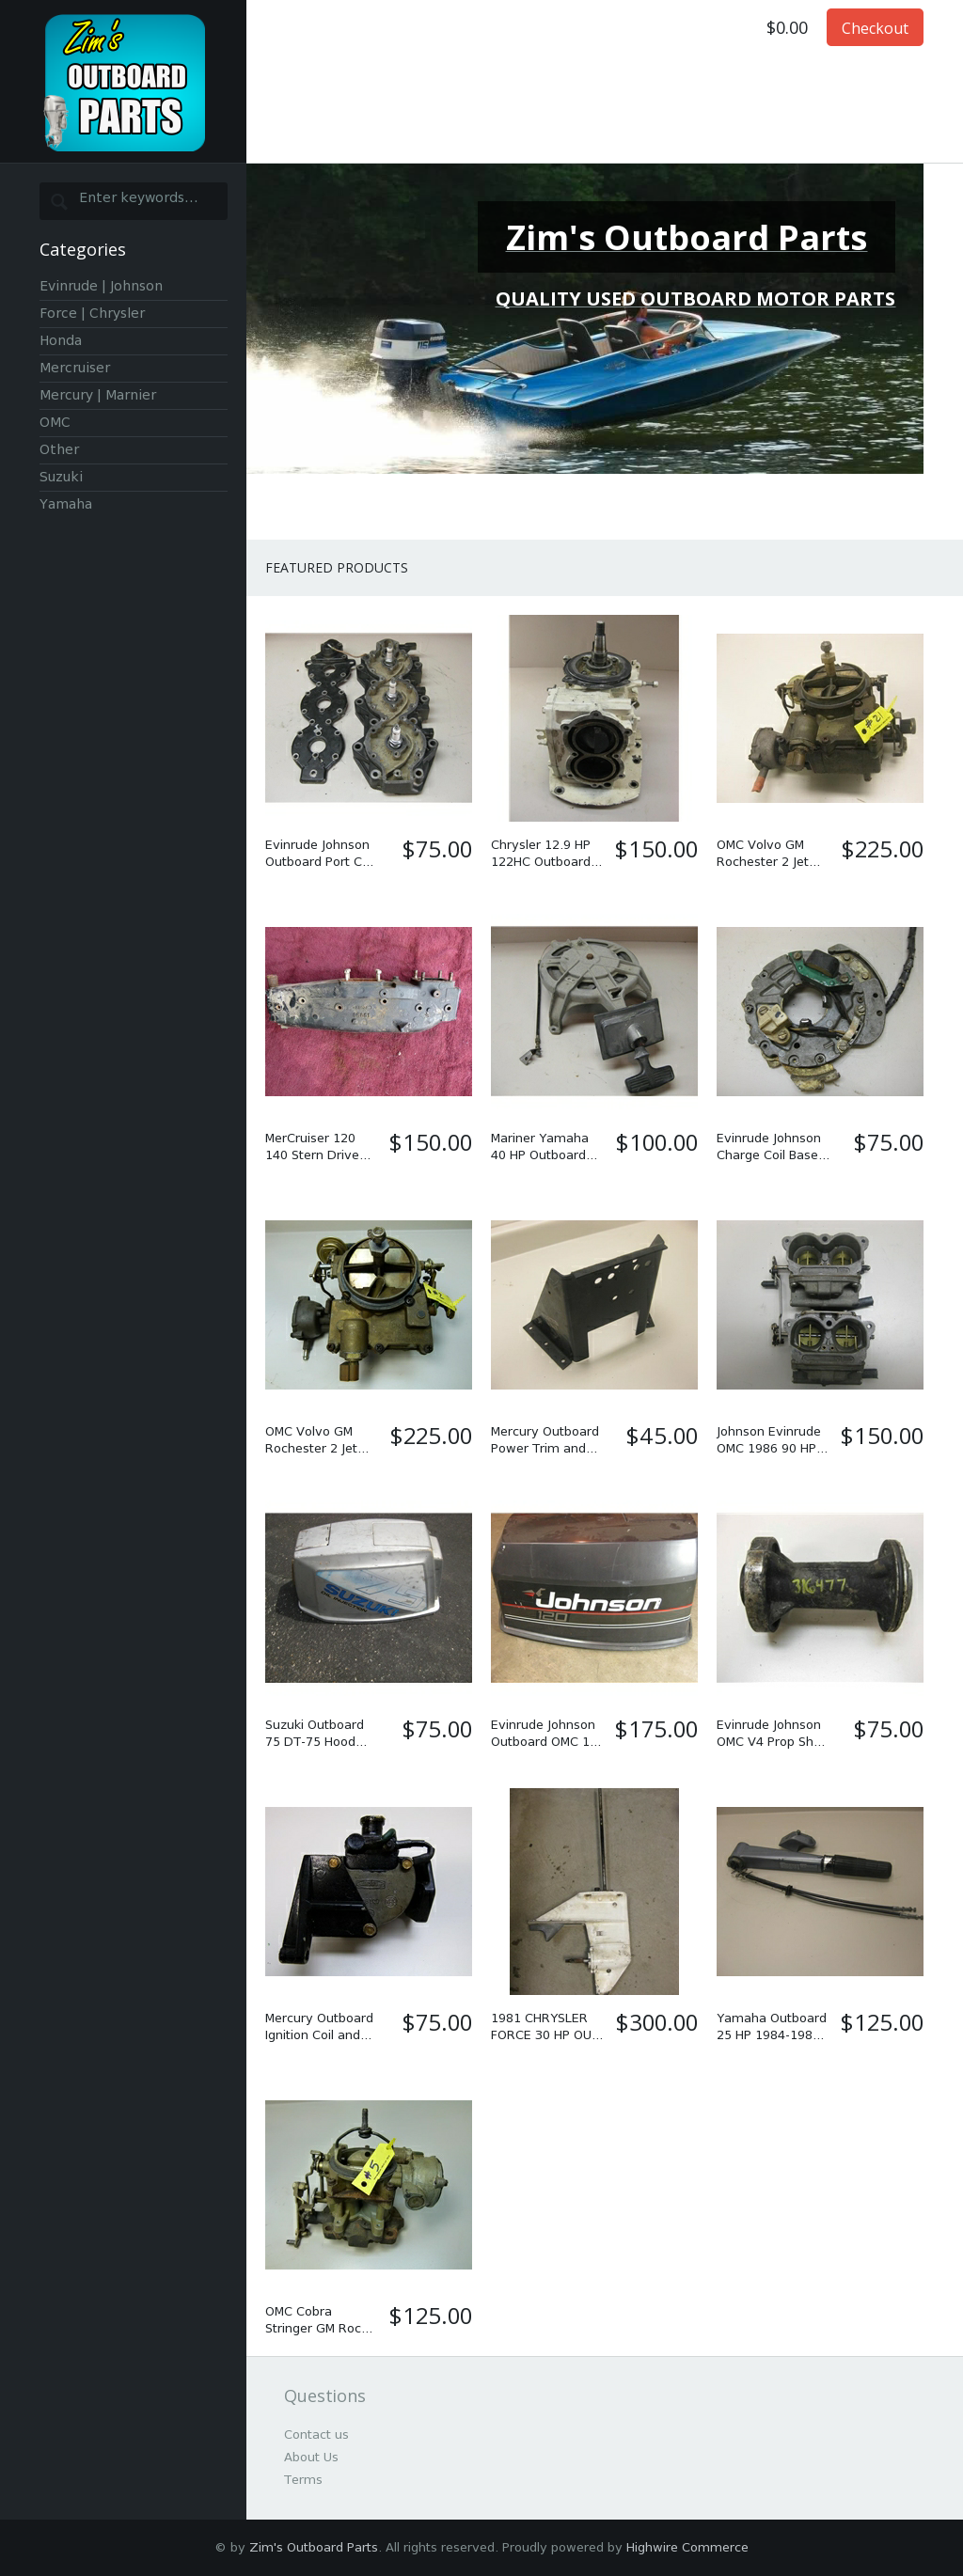 Zim's Outboard Parts Competitors, Revenue and Employees